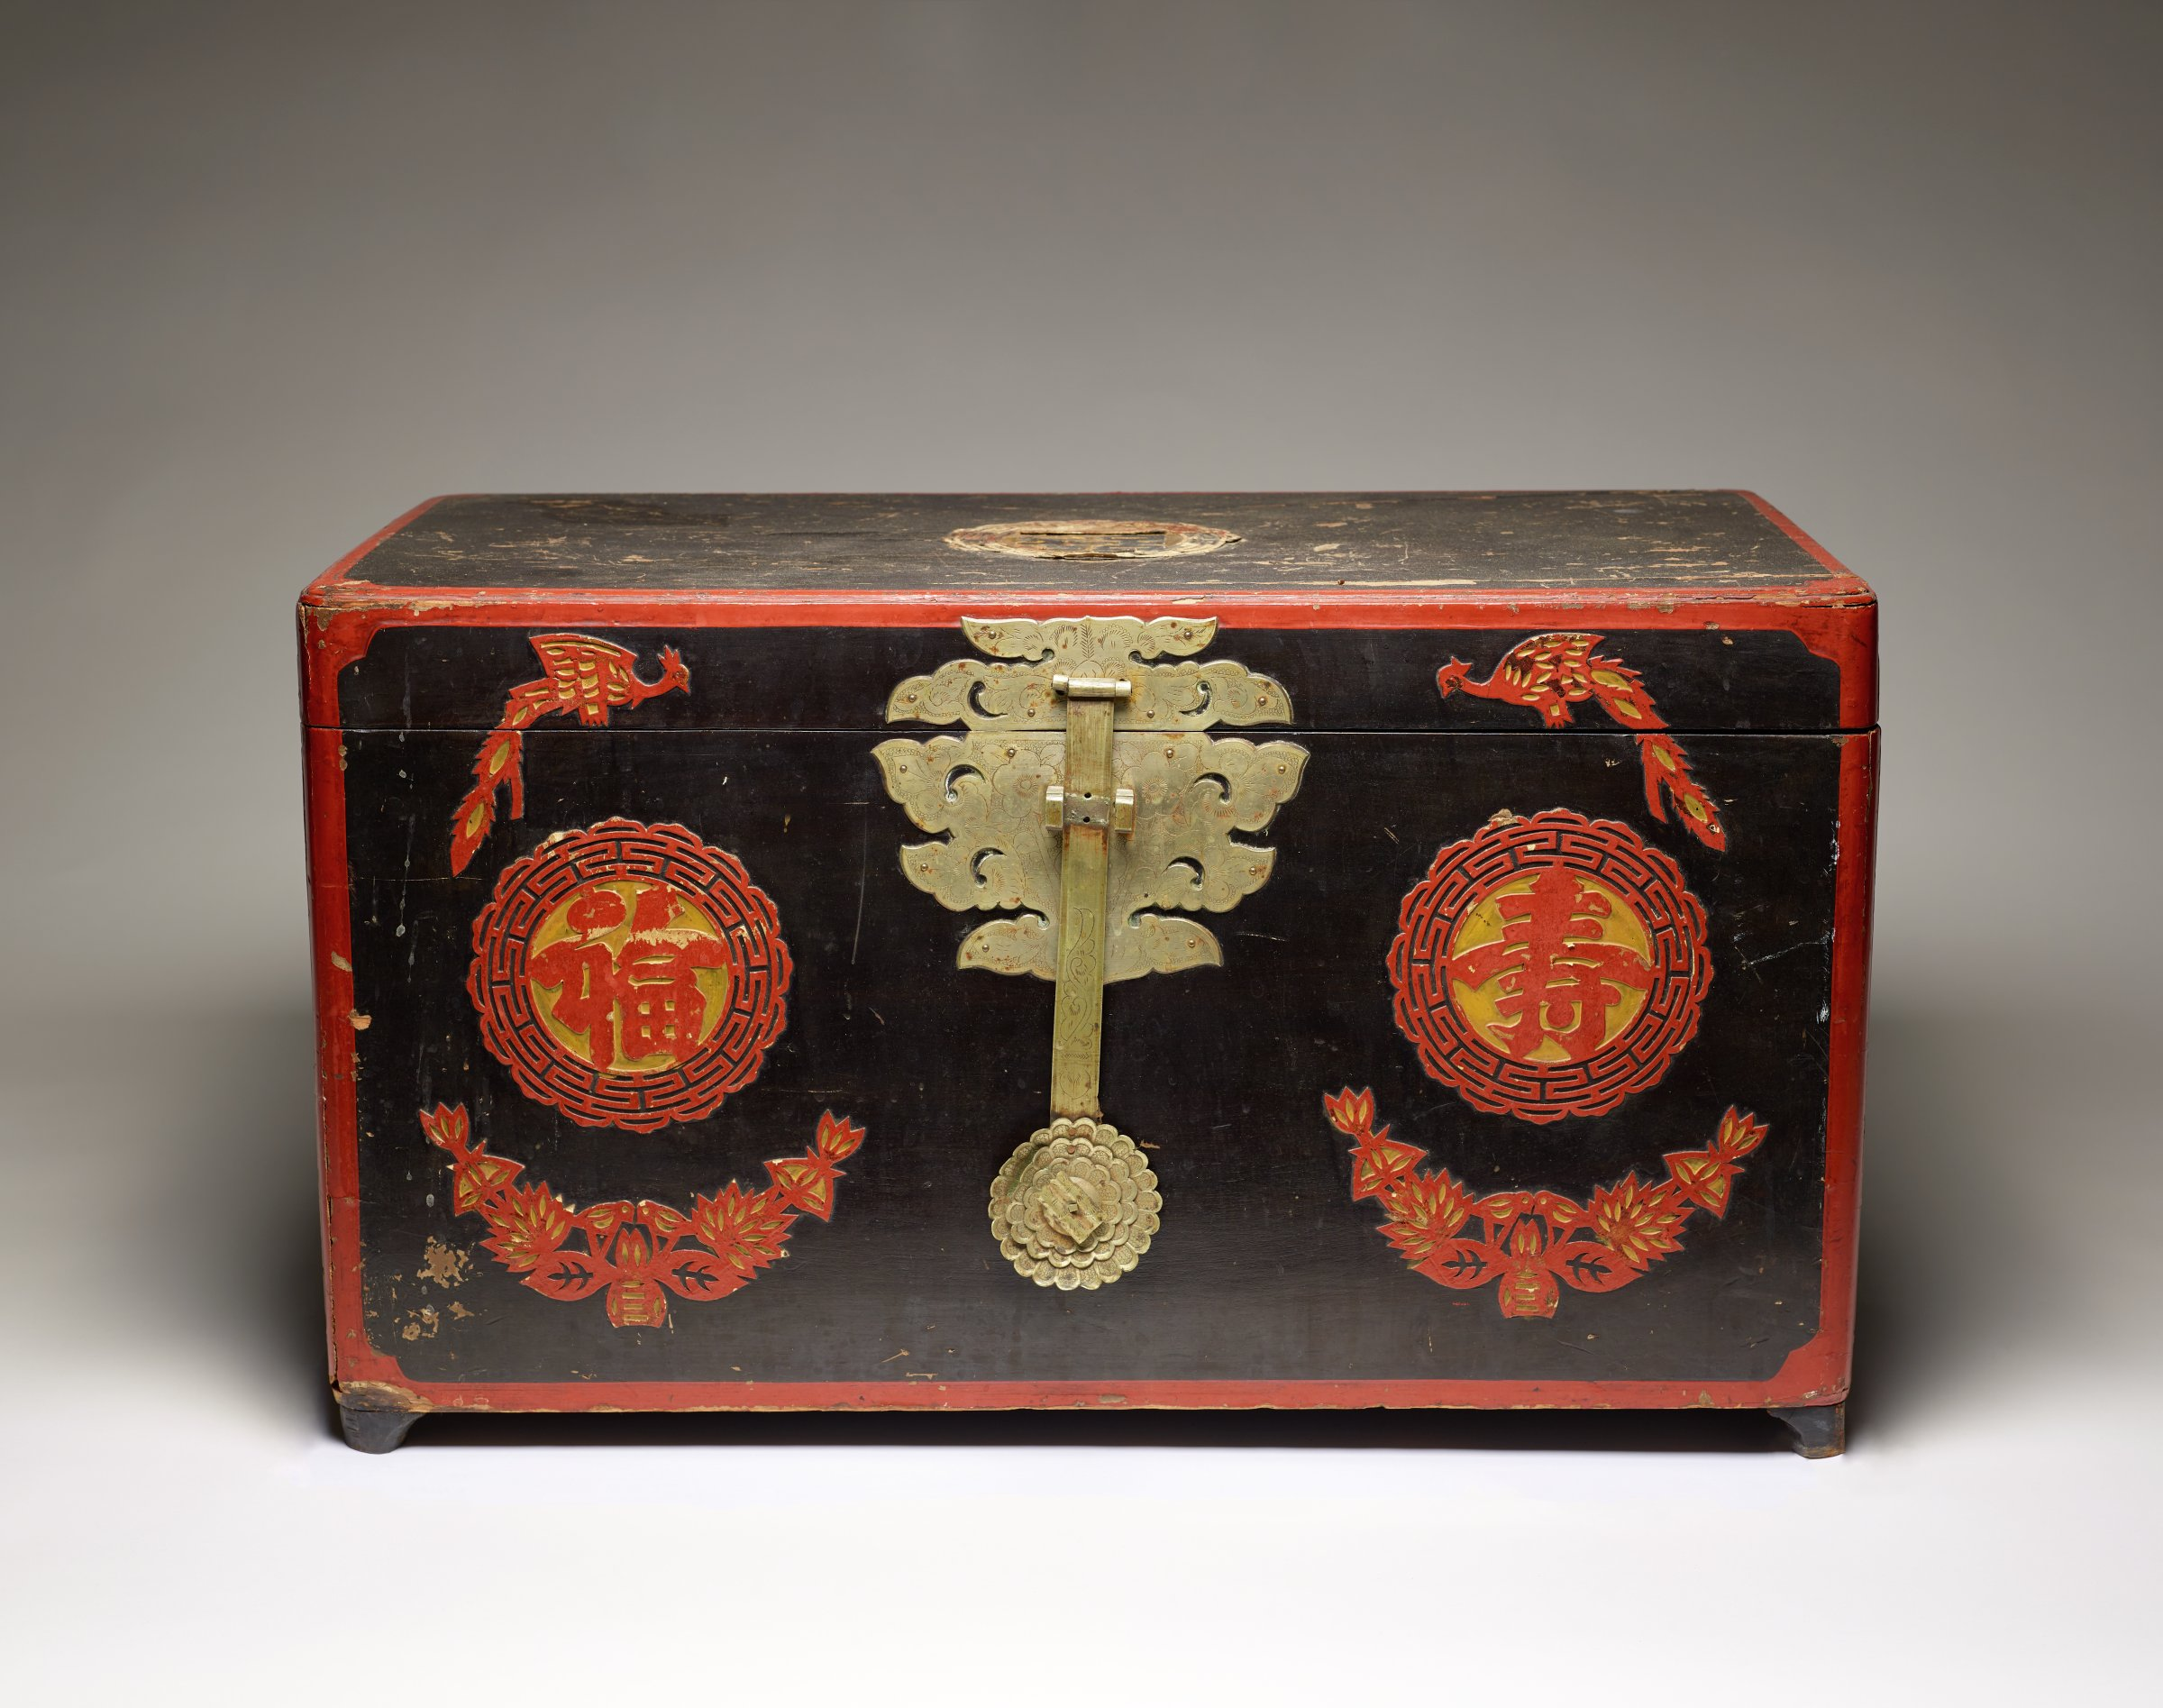 """Wedding Document Box with Pheonix Couple, Flowers """"Luck"""" and """"Long Life"""" Motifs, Korea, wood, silver and lacquer"""